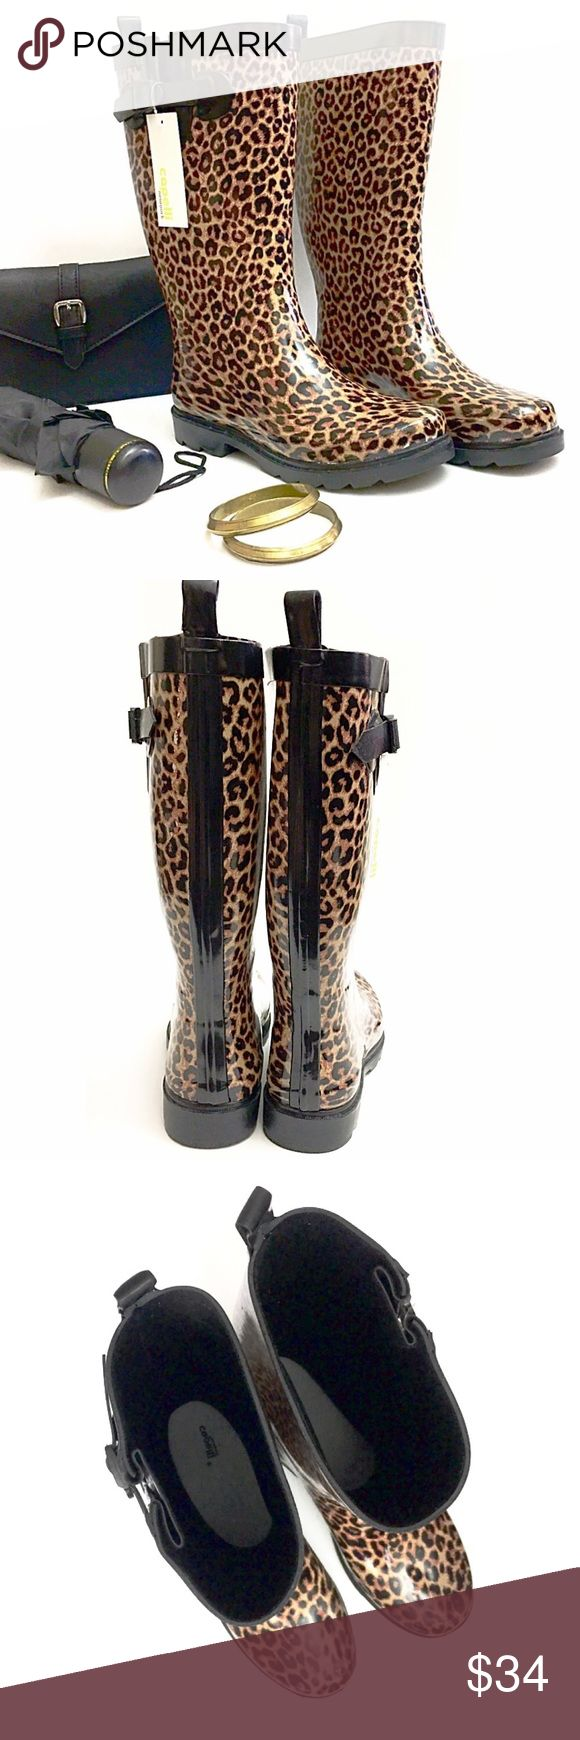 """Capelli New York Leopard Tall Rubber Rain Boots Stay stylish when the rain falls with these chic rubber rain boots from Capelli New York featuring an exotic leopard pattern and top buckle. Heel height is 1.25"""" with 13"""" shaft heights and 15-3/4"""" shaft circumferences. Brand new with tags! Retails $64 Capelli of New York Shoes Winter & Rain Boots"""